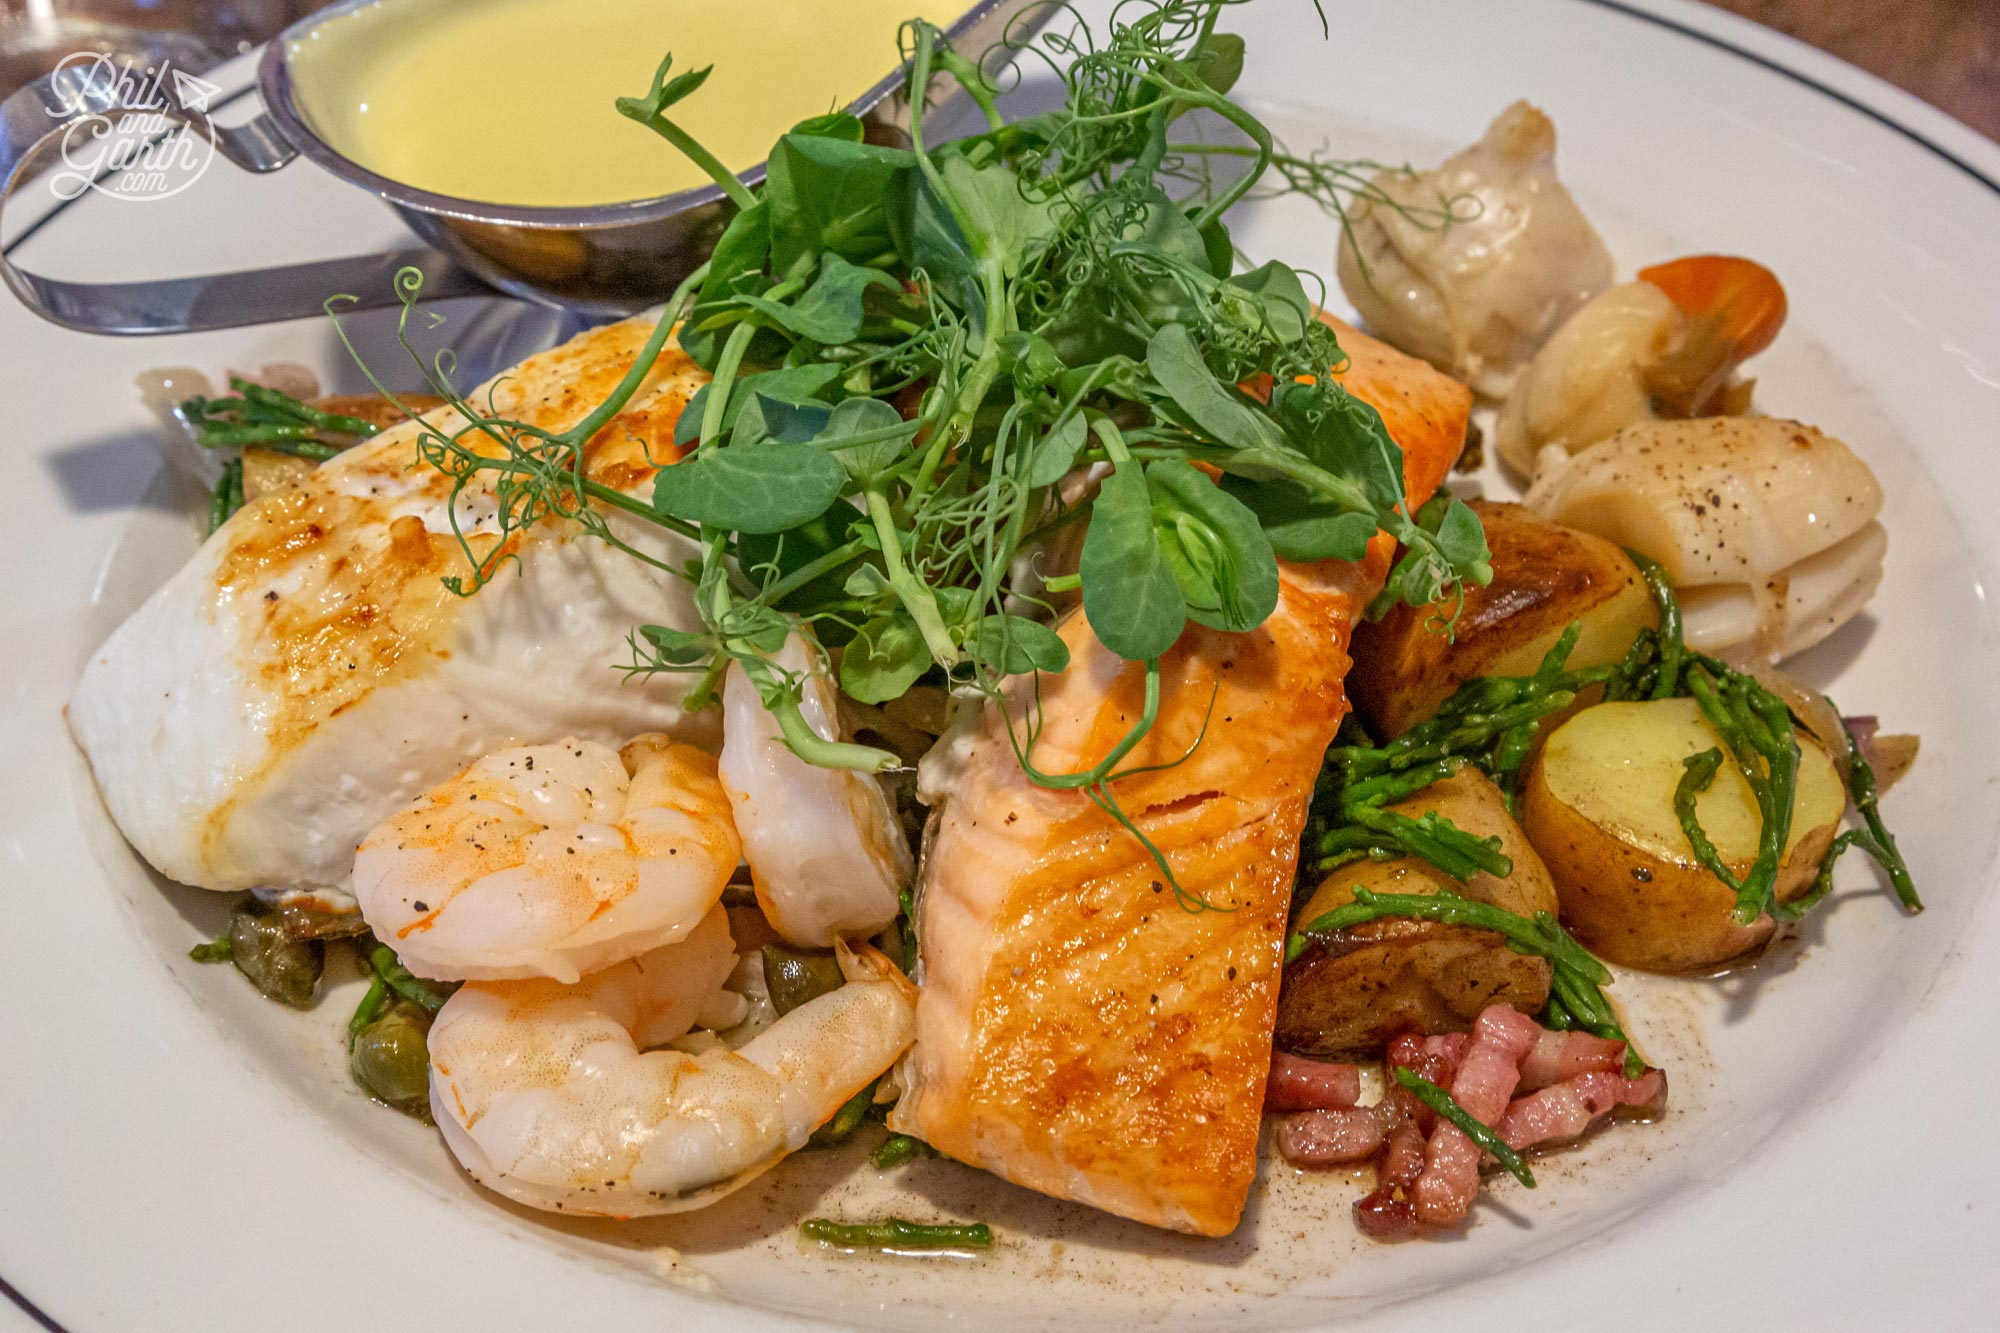 The delicious fish medley dish from The Magpie Cafe